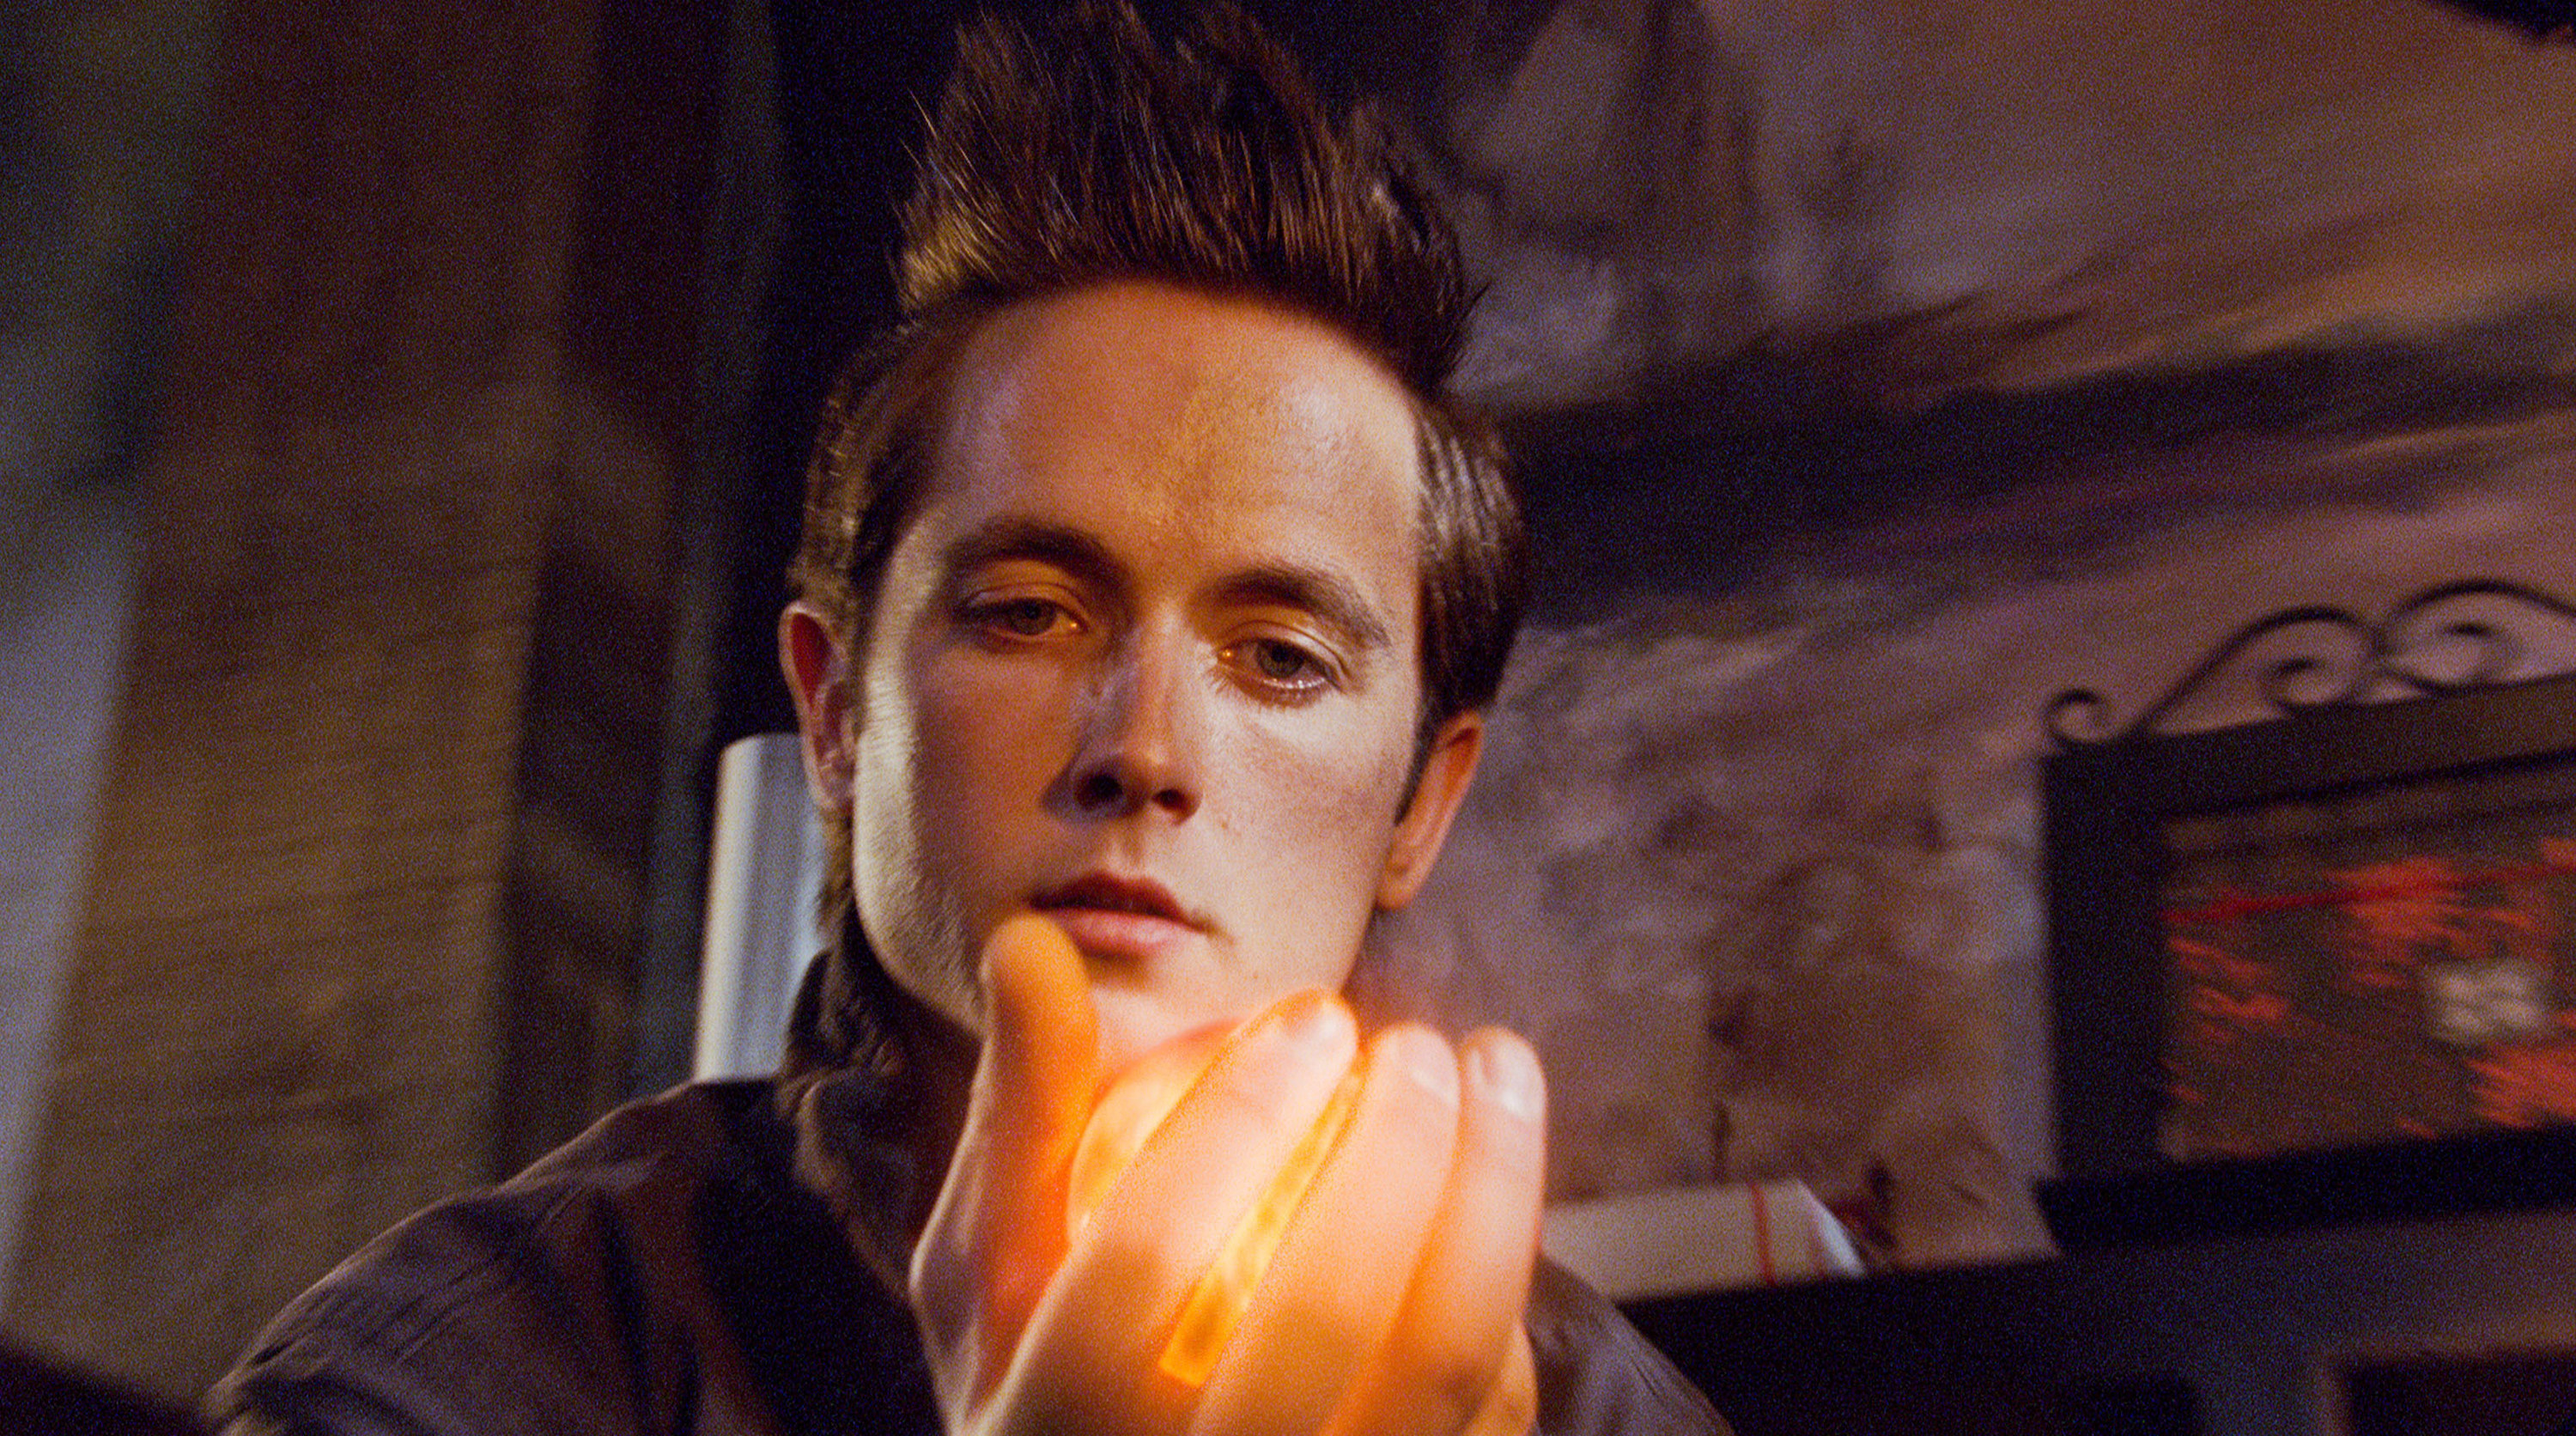 Justin Chatwin holds a glowing orb in his hand